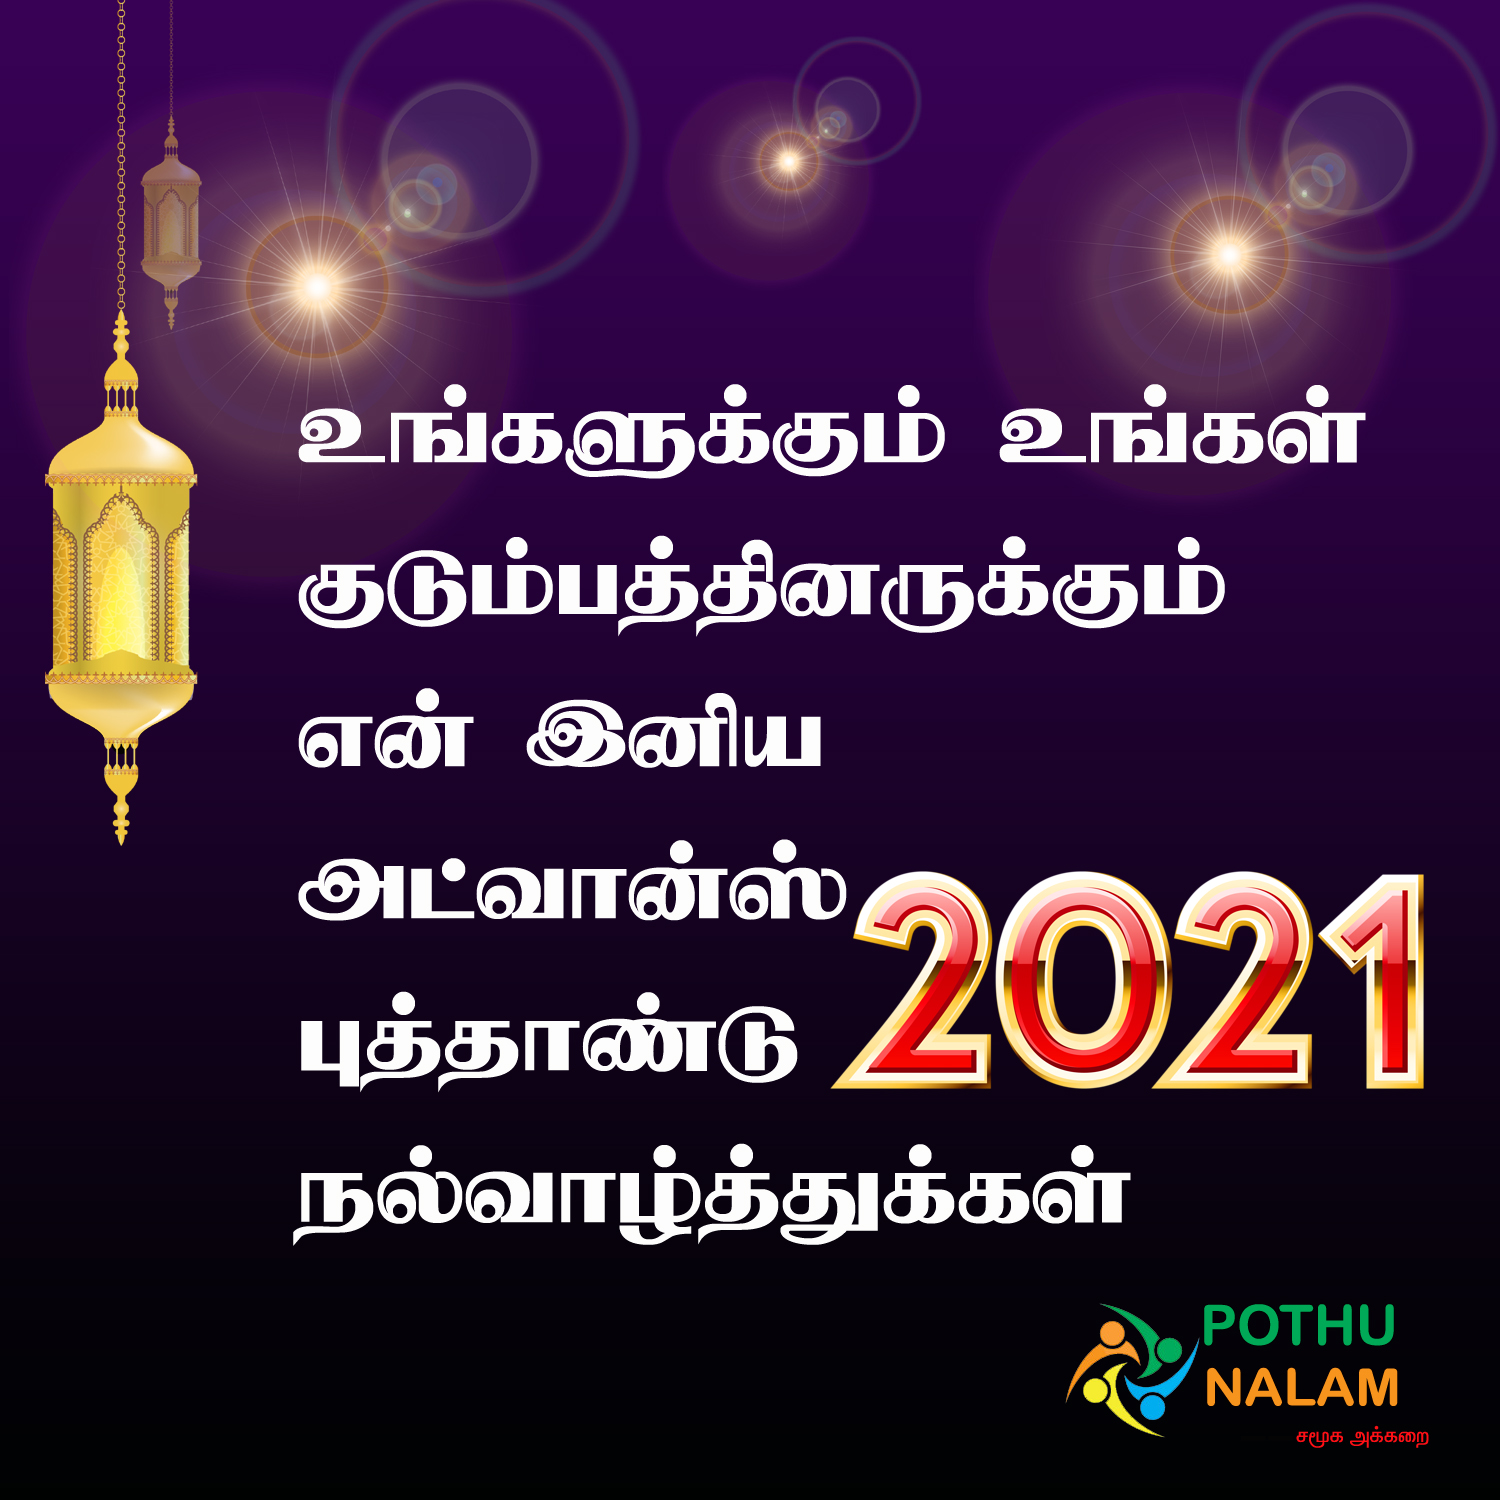 happy new year 2021 wishes in tamil